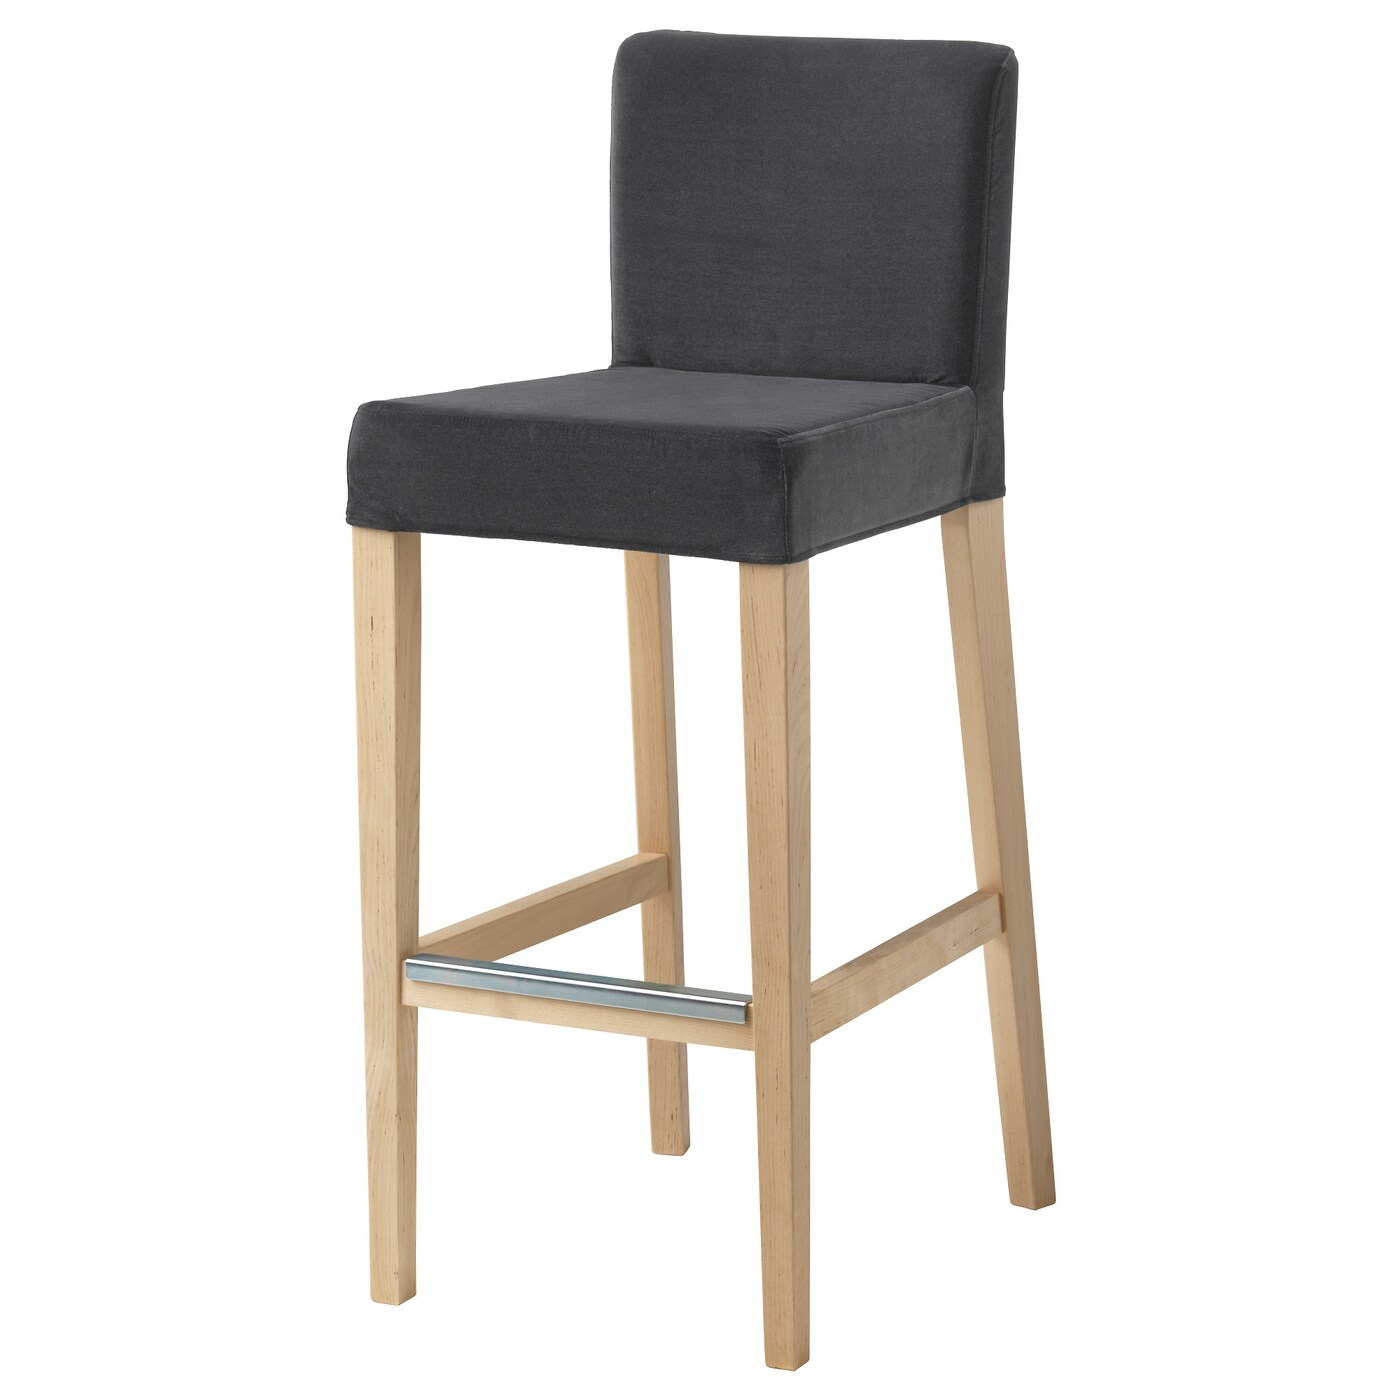 Ikea Keuken Eetbar Barstoelen Keuken Beautiful Affordable Vantoor Interiors With